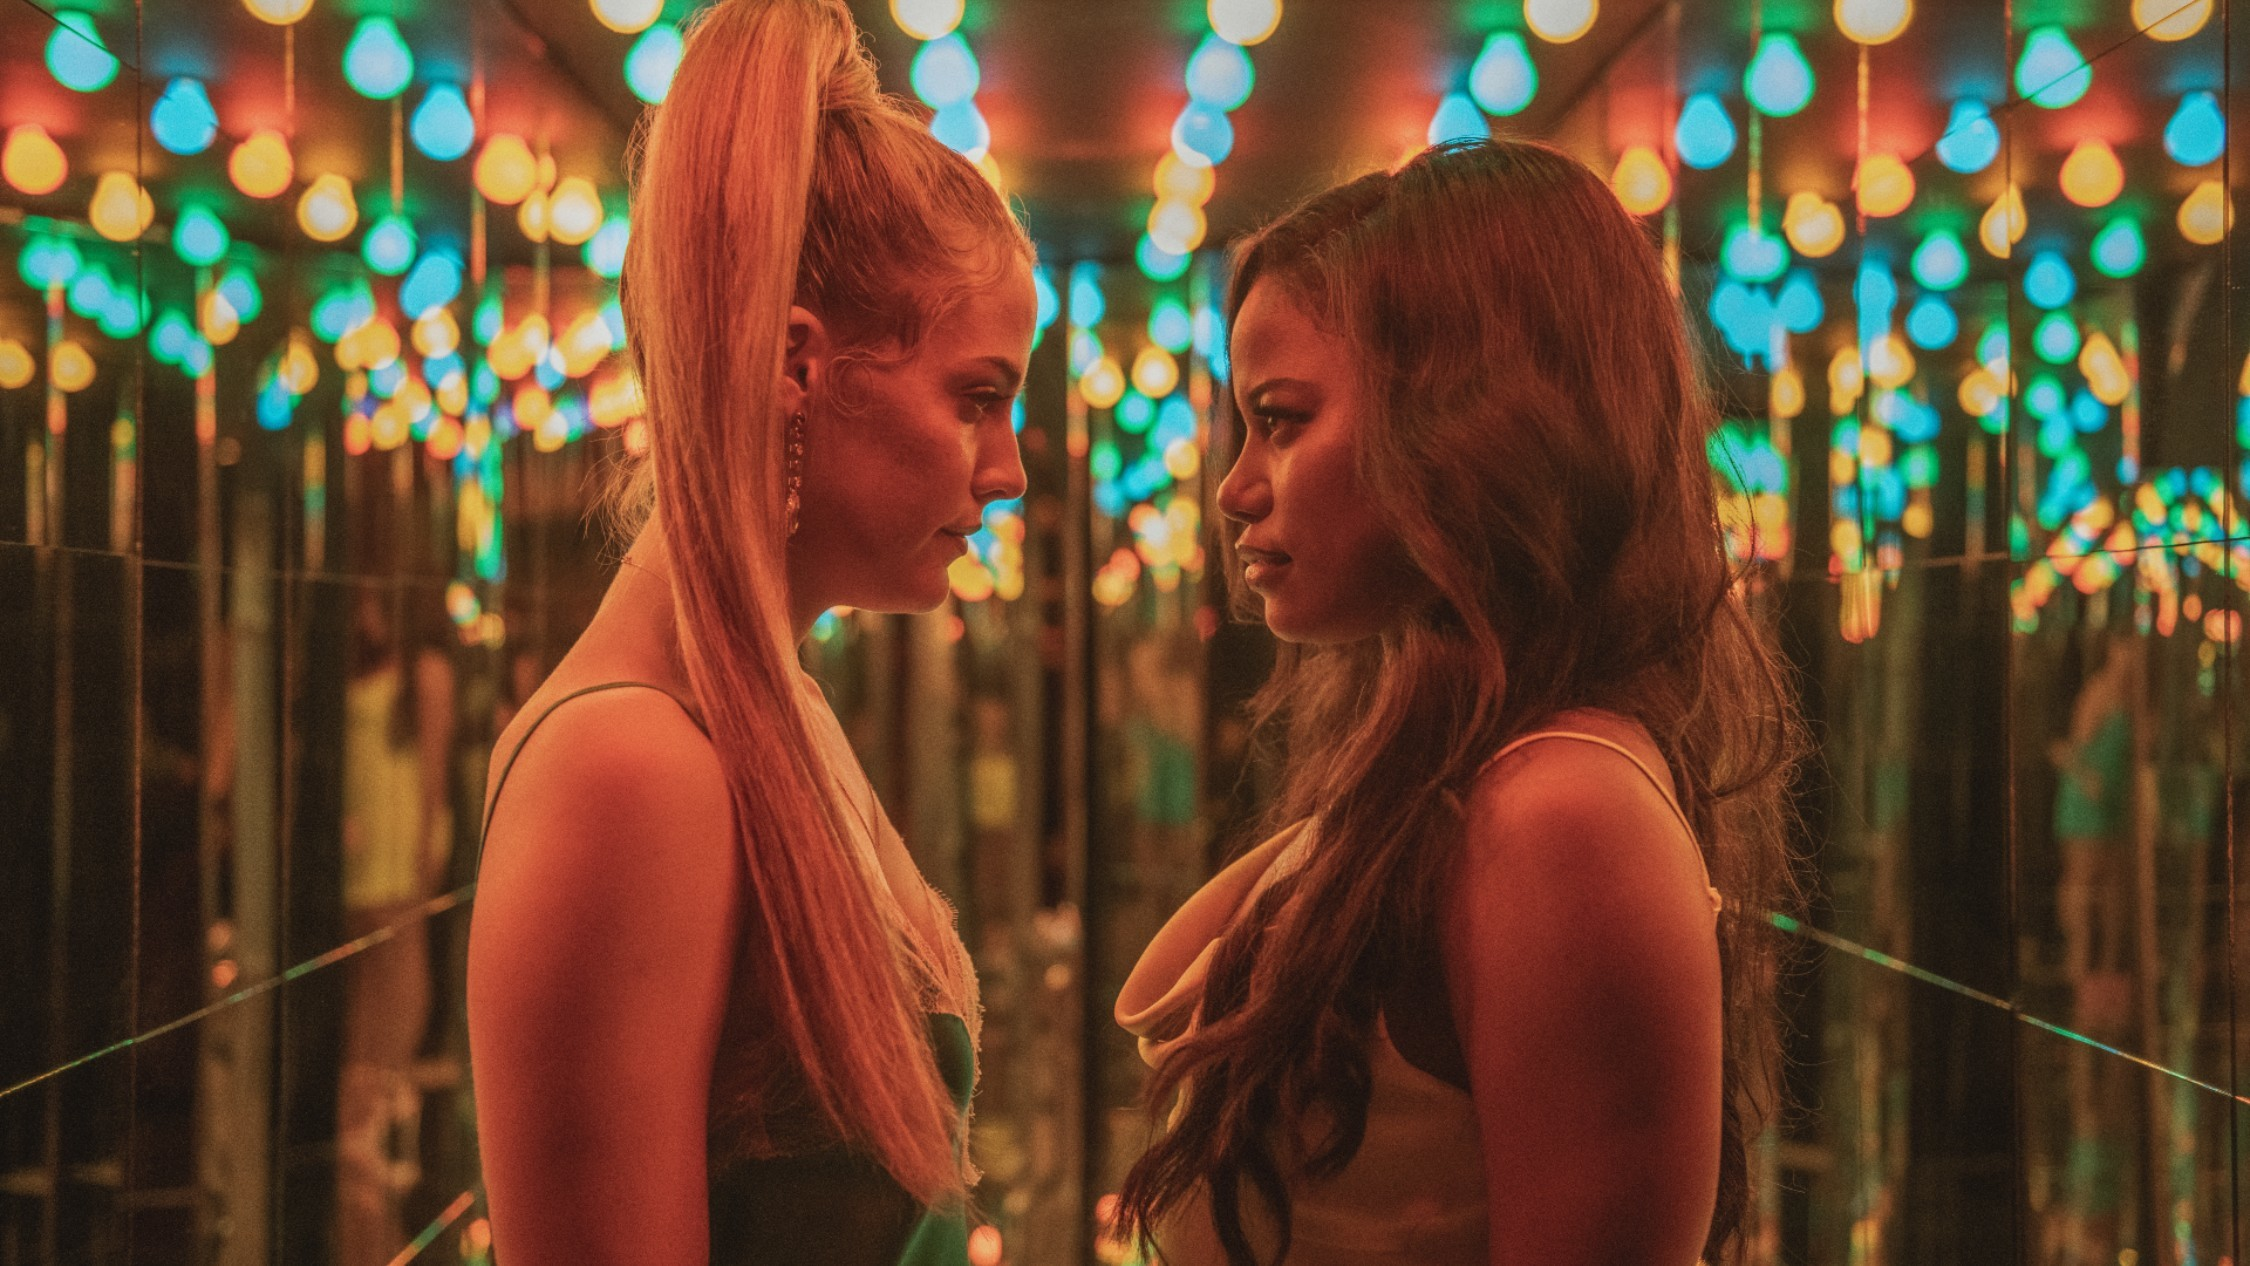 Two women stare at each other bathed by neon light